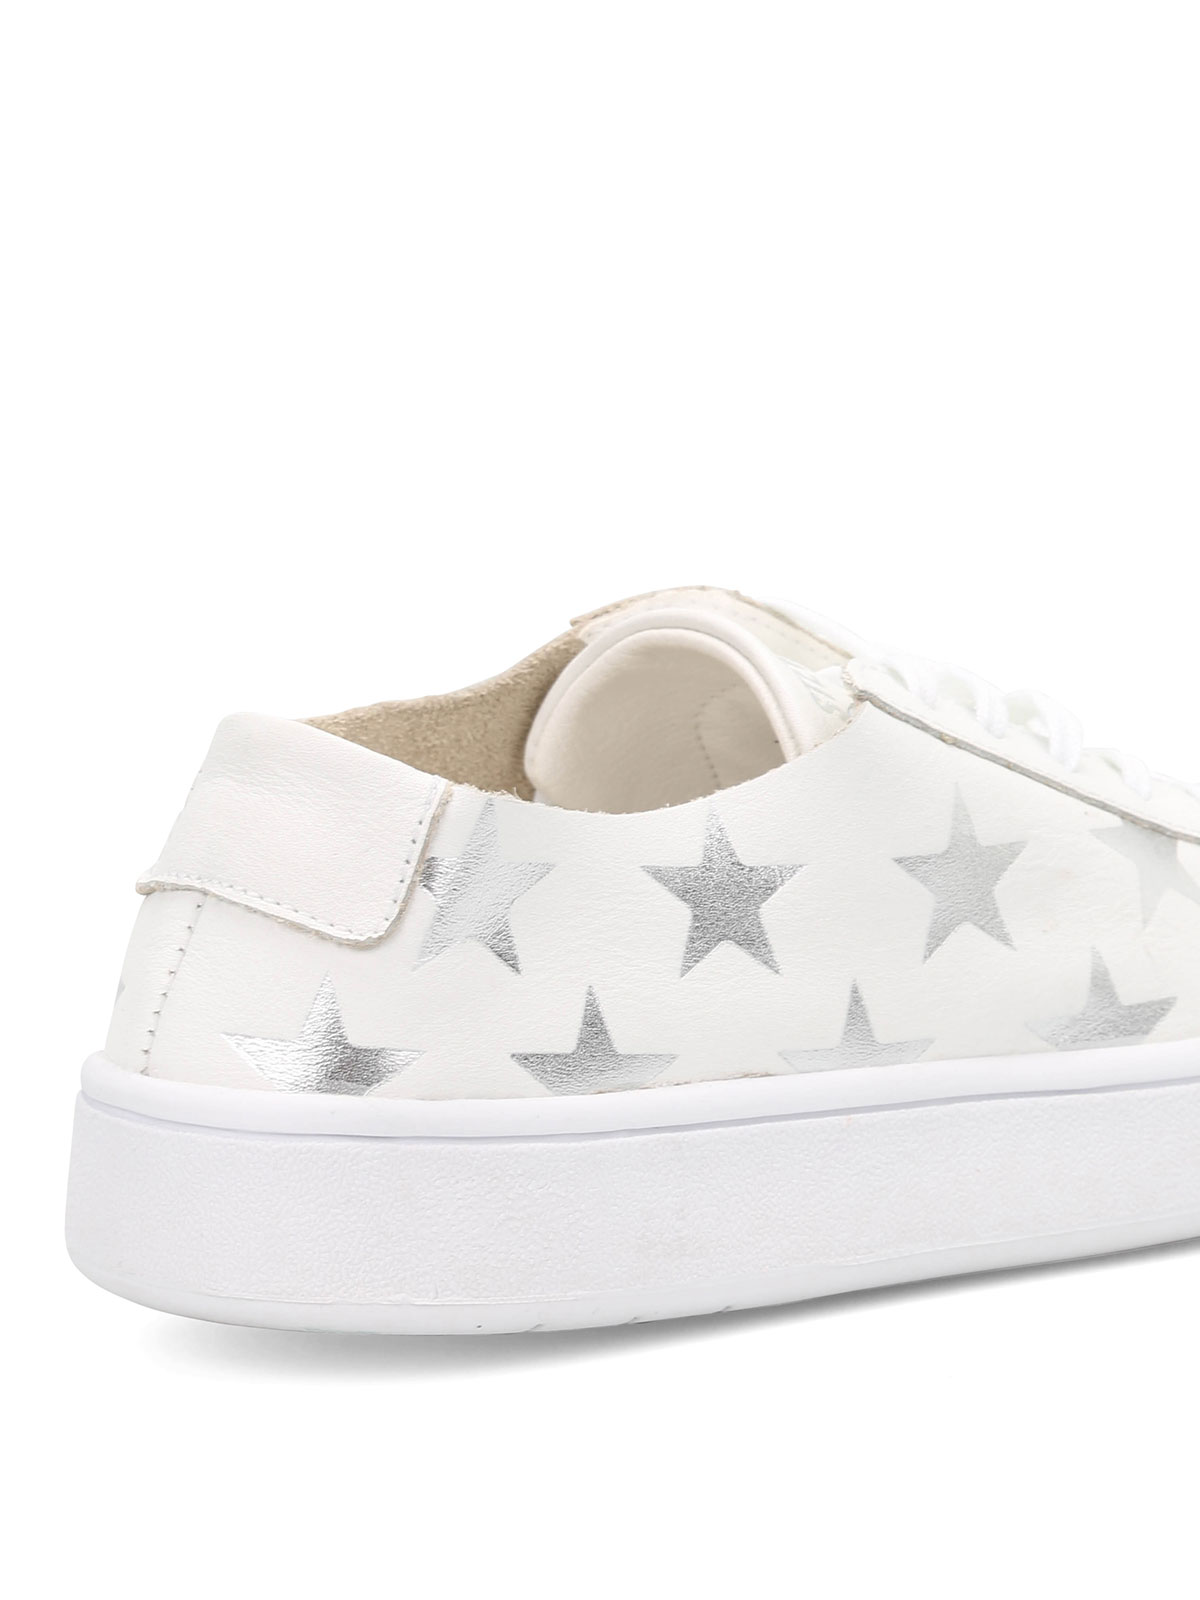 best website ab25a 2456f iKRIX-steve-madden-trainers-bolt-sneakers-00000063616f00s013.jpg